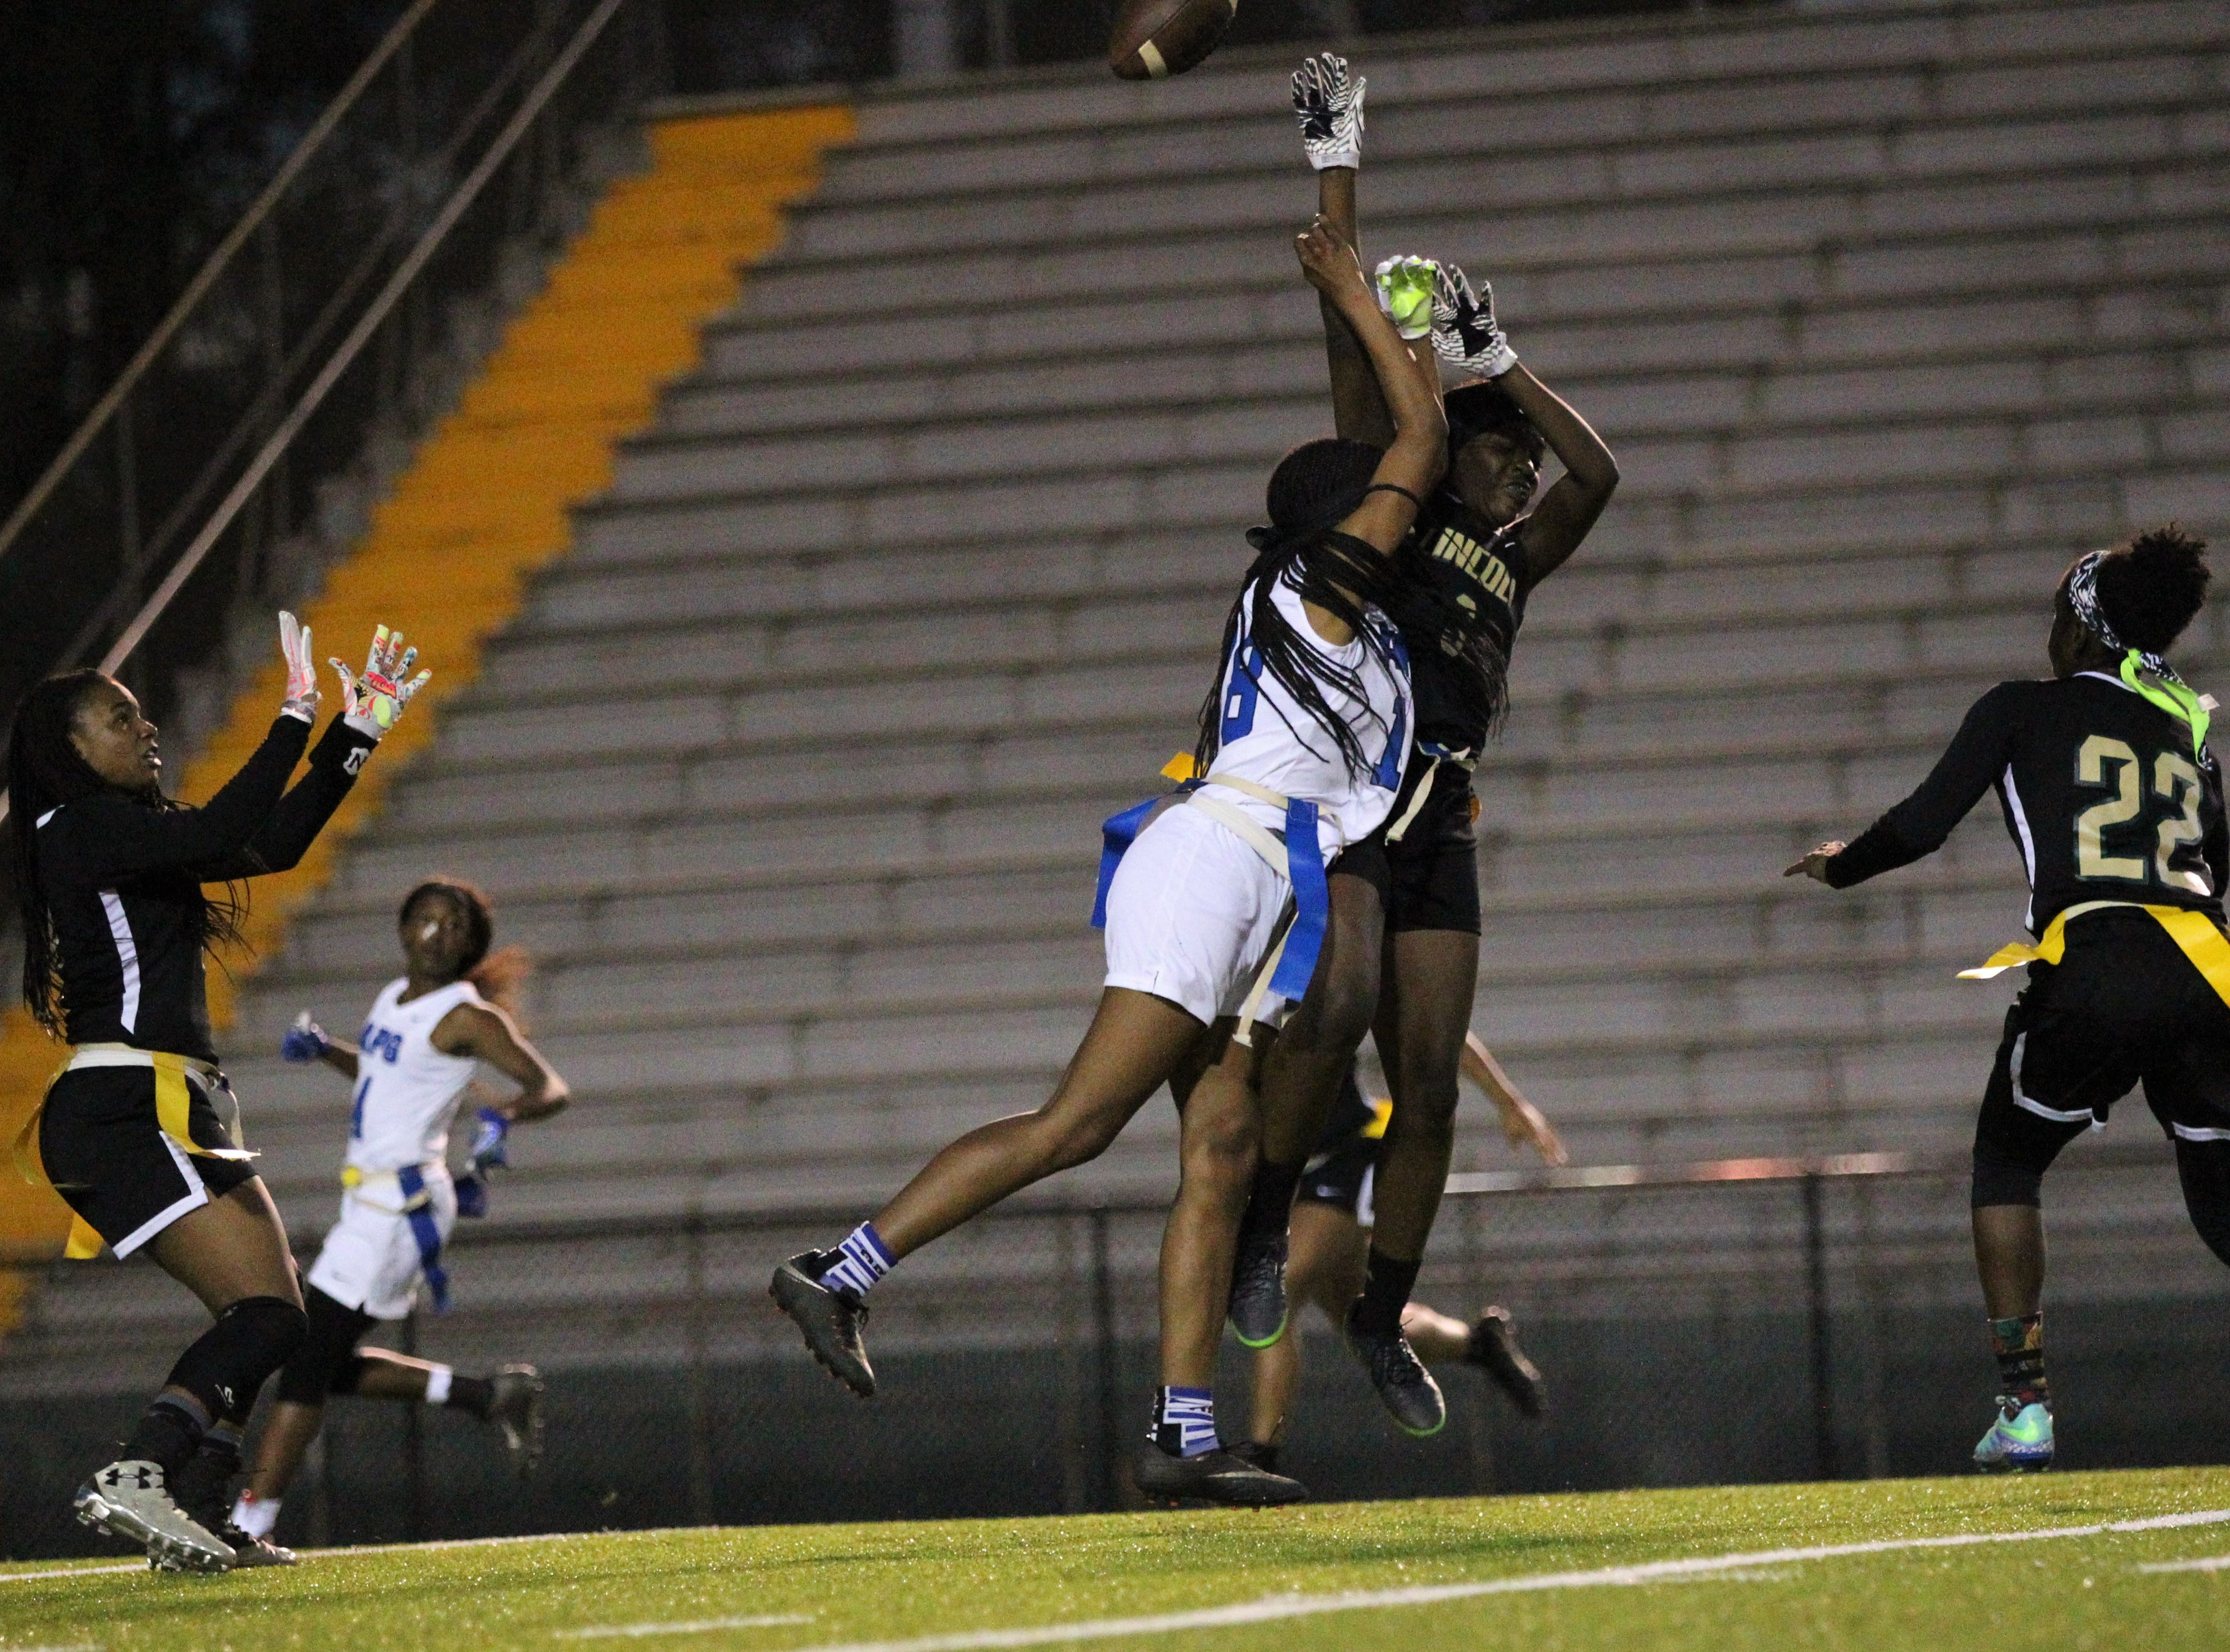 Lincoln breaks up a deep pass that results in an interception as Godby's flag football team beat Lincoln 25-6 at Gene Cox Stadium on March 14, 2019.